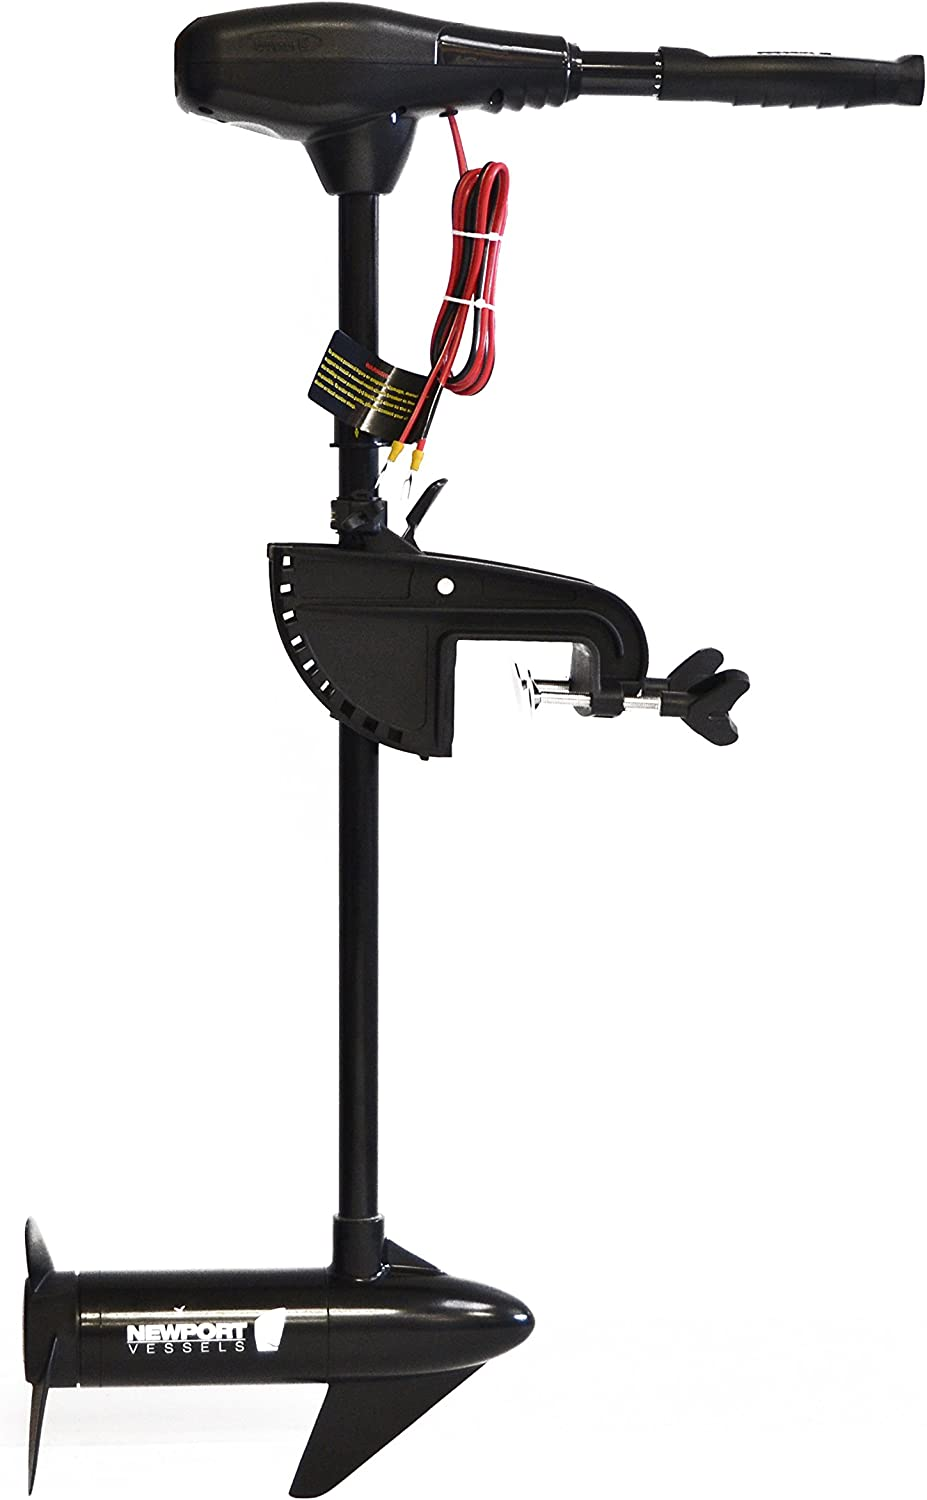 "Newport Vessels NV-Series 46lb Thrust Saltwater Transom Mounted Trolling Electric Trolling Motor w/LED Battery Indicator & 30"" Shaft"